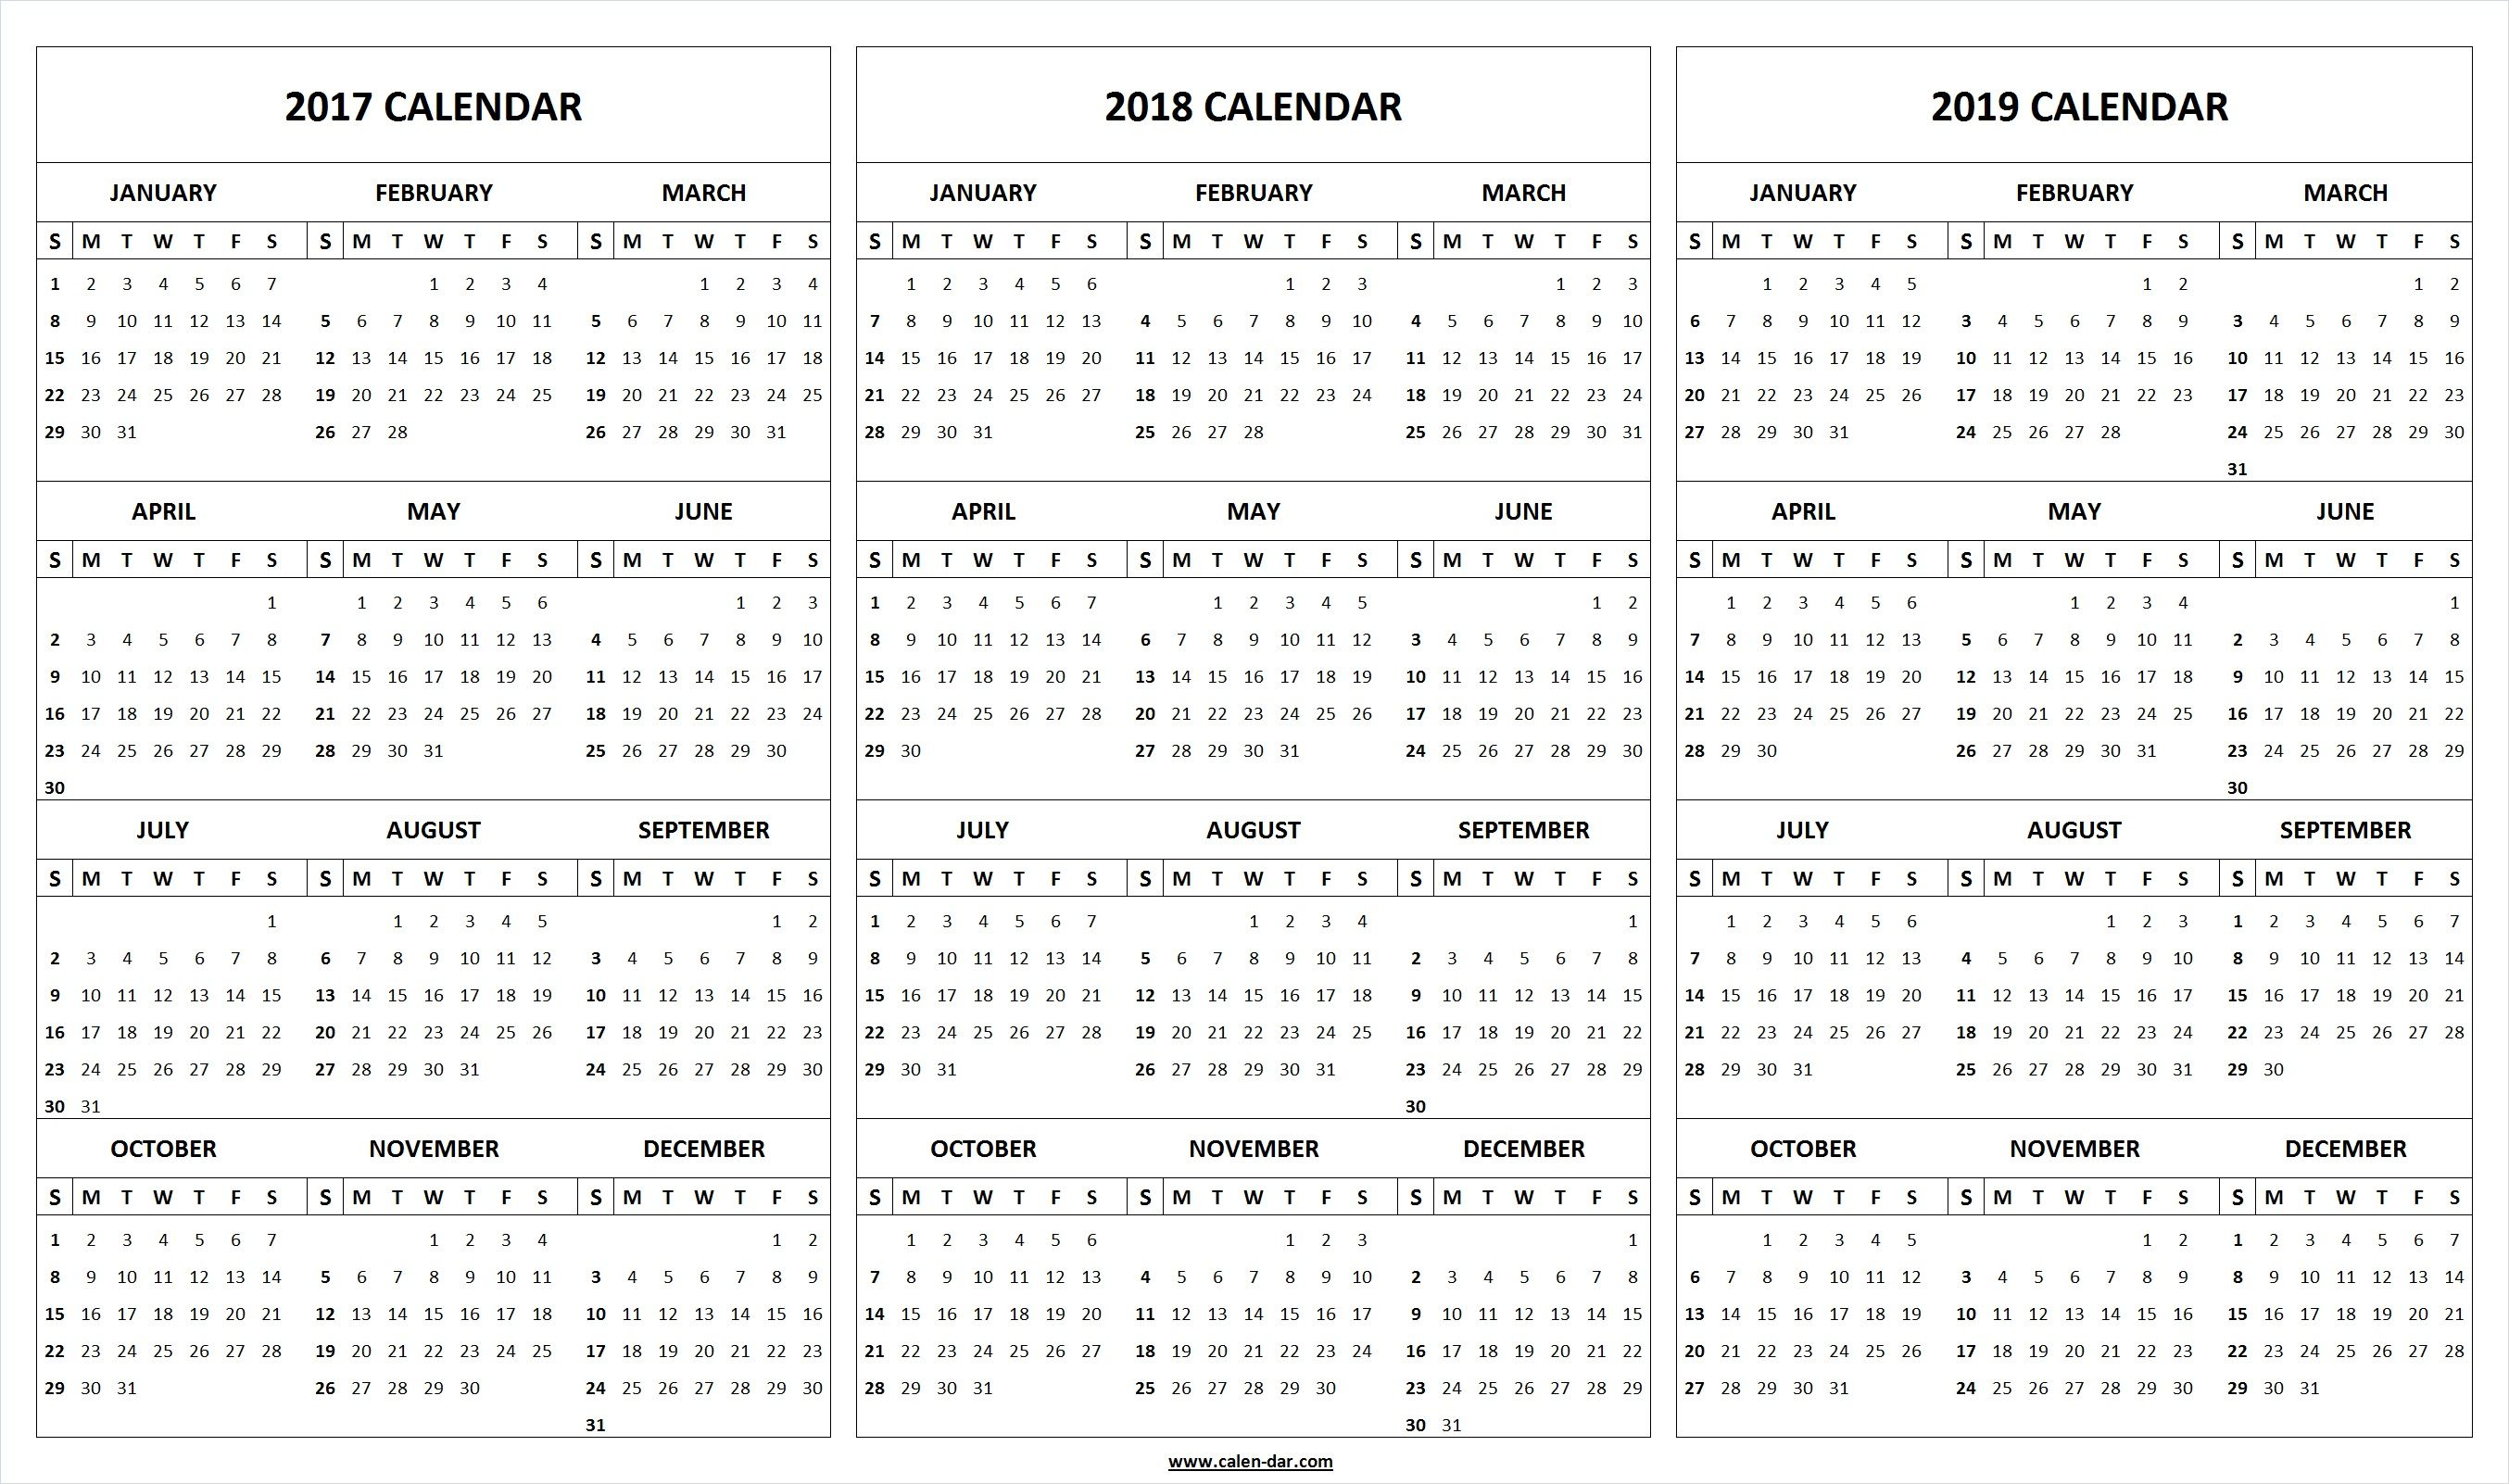 Get Free Blank Printable 2017 2018 2019 Calendar Template These